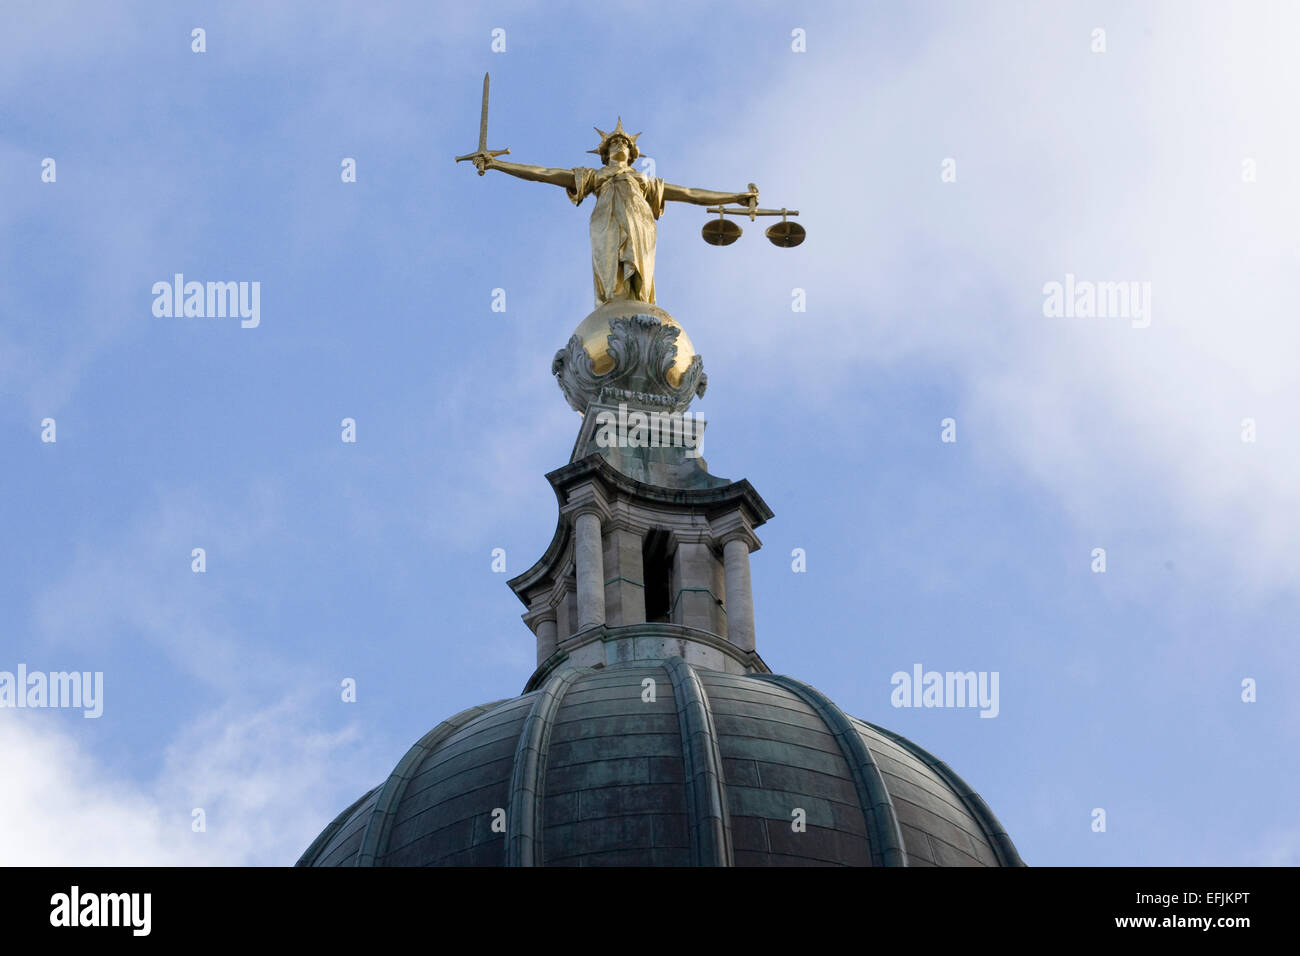 Gold statue of Lady Justice statue on the top of the Old Bailey London England - Stock Image